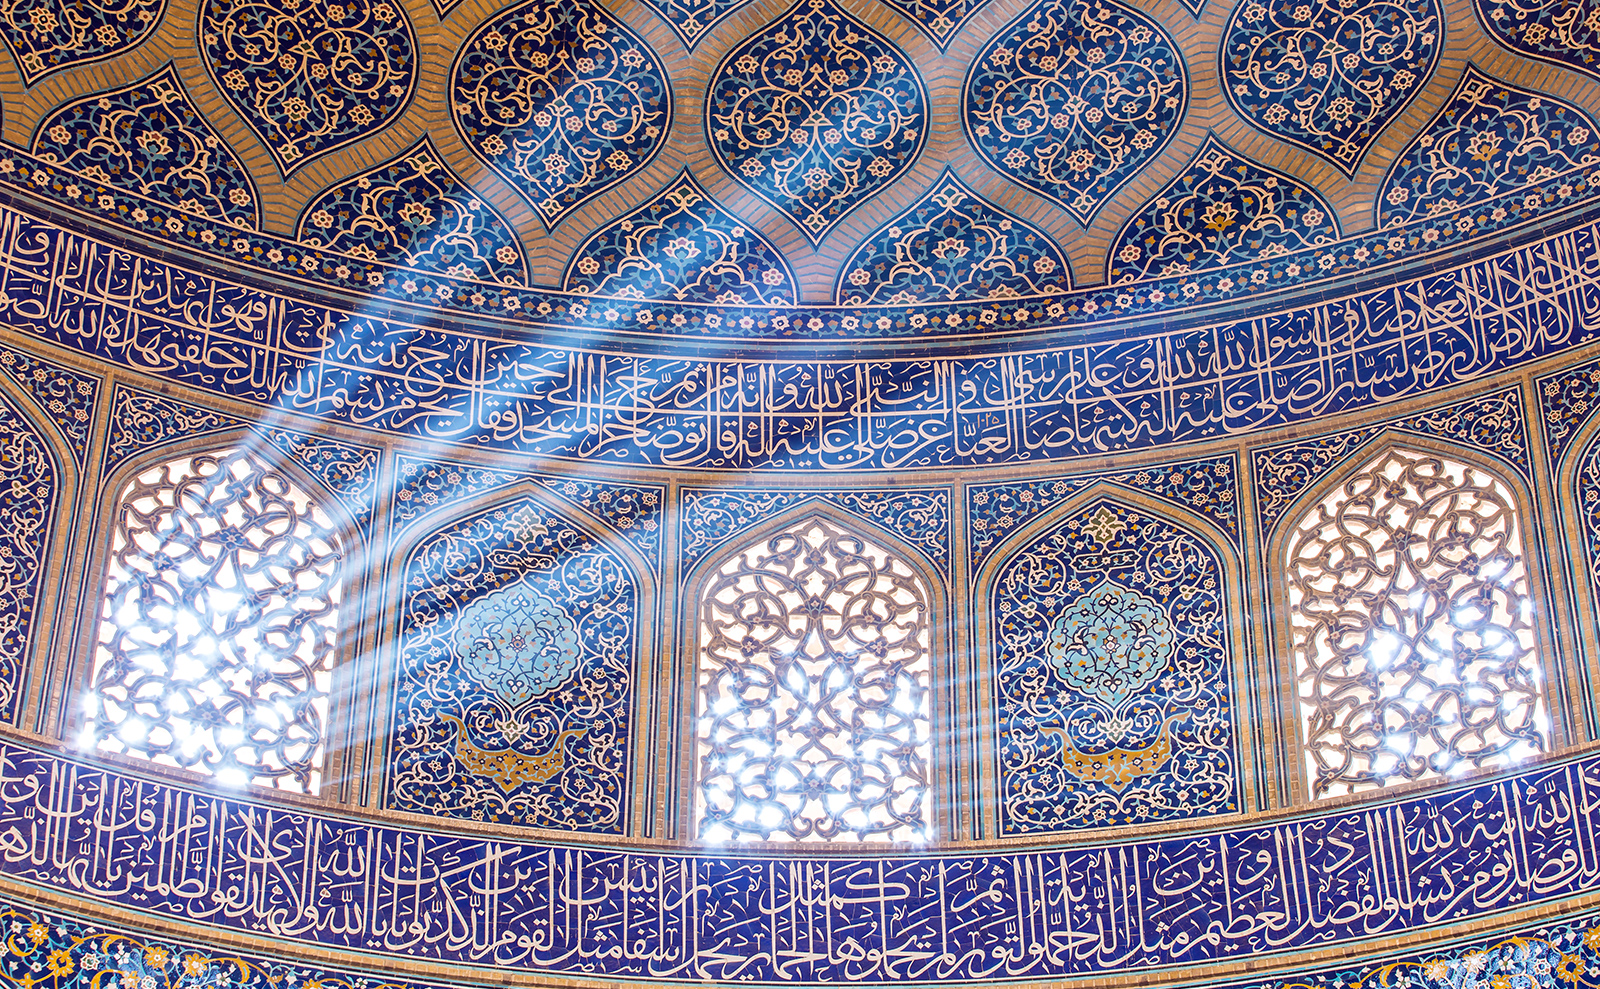 tiled walls of a mosque